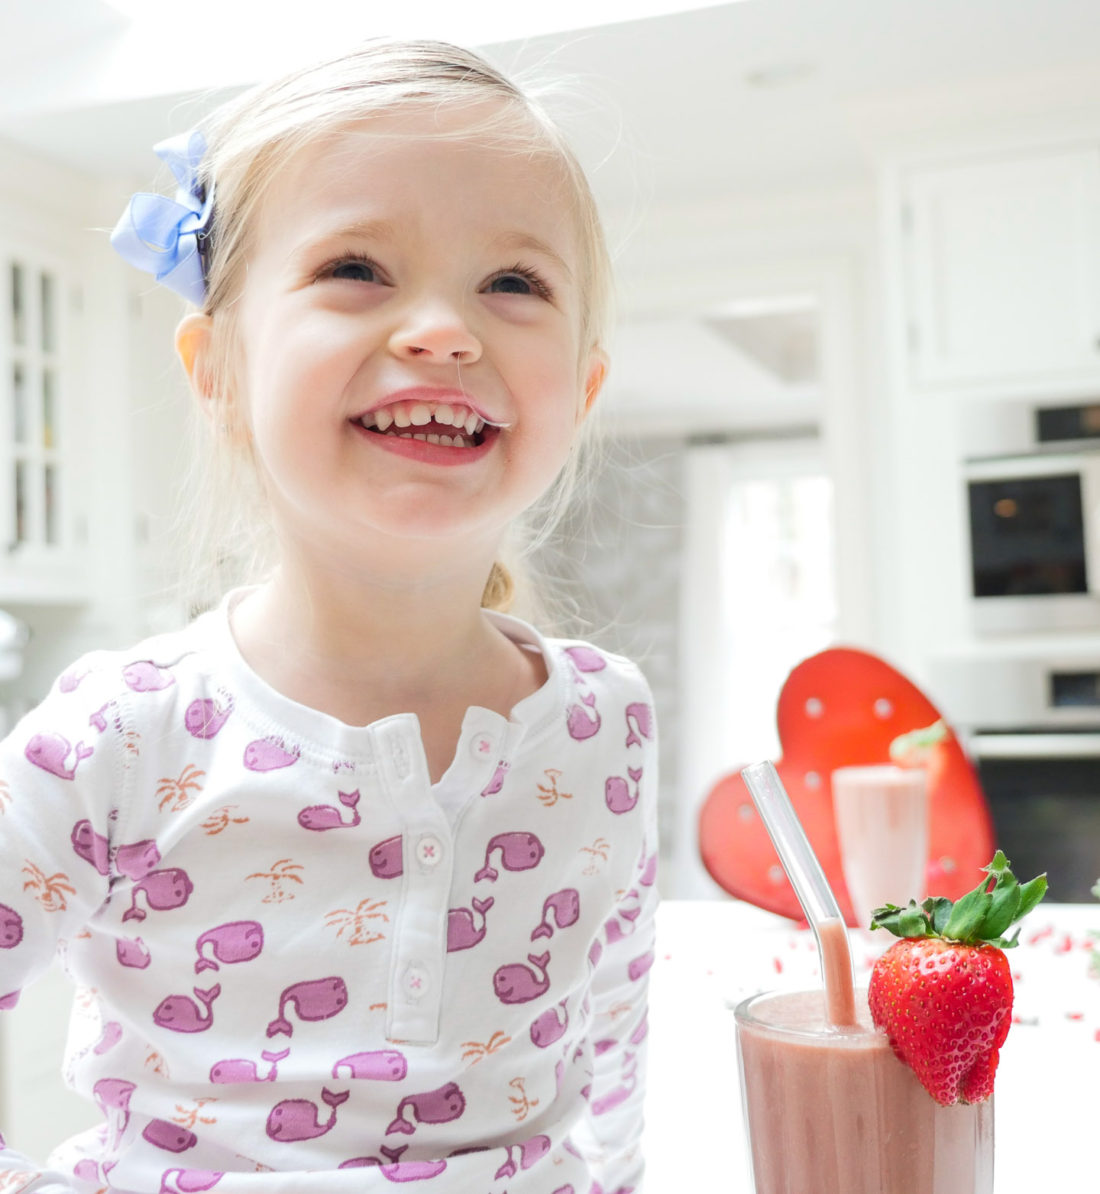 Marlowe Martino smiles and sits beside her chocolate covered strawberry smoothie